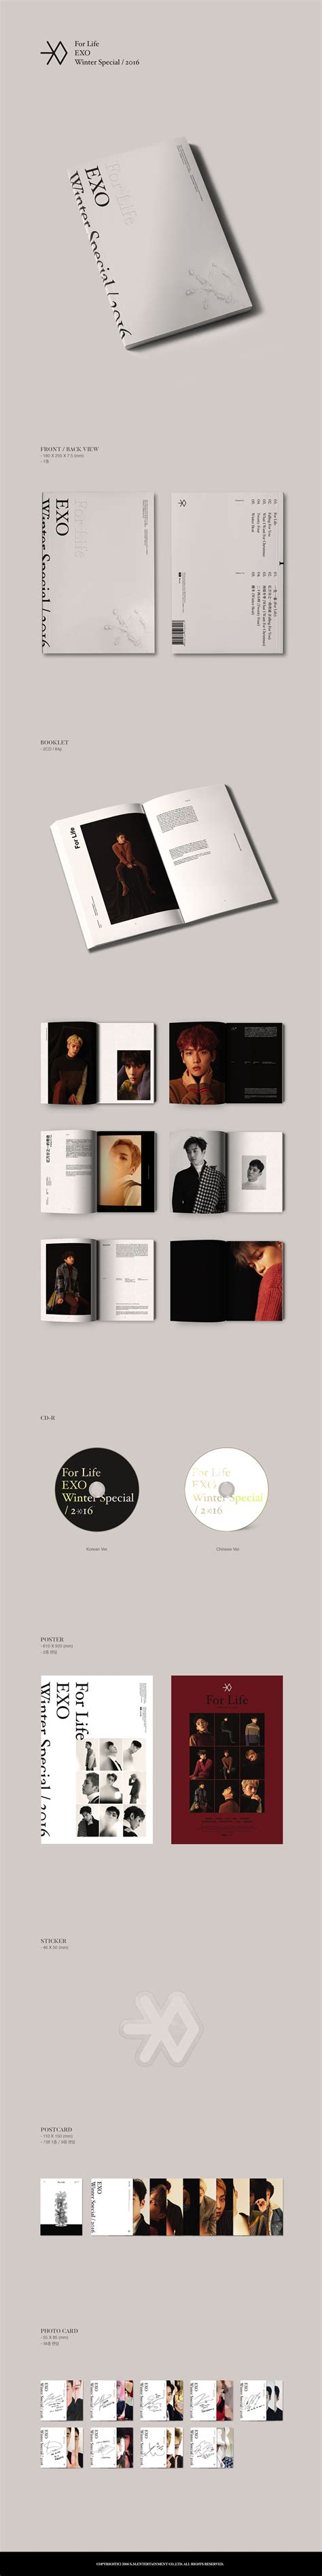 exo winter album exo winter special album 2016 ilovekpopshop